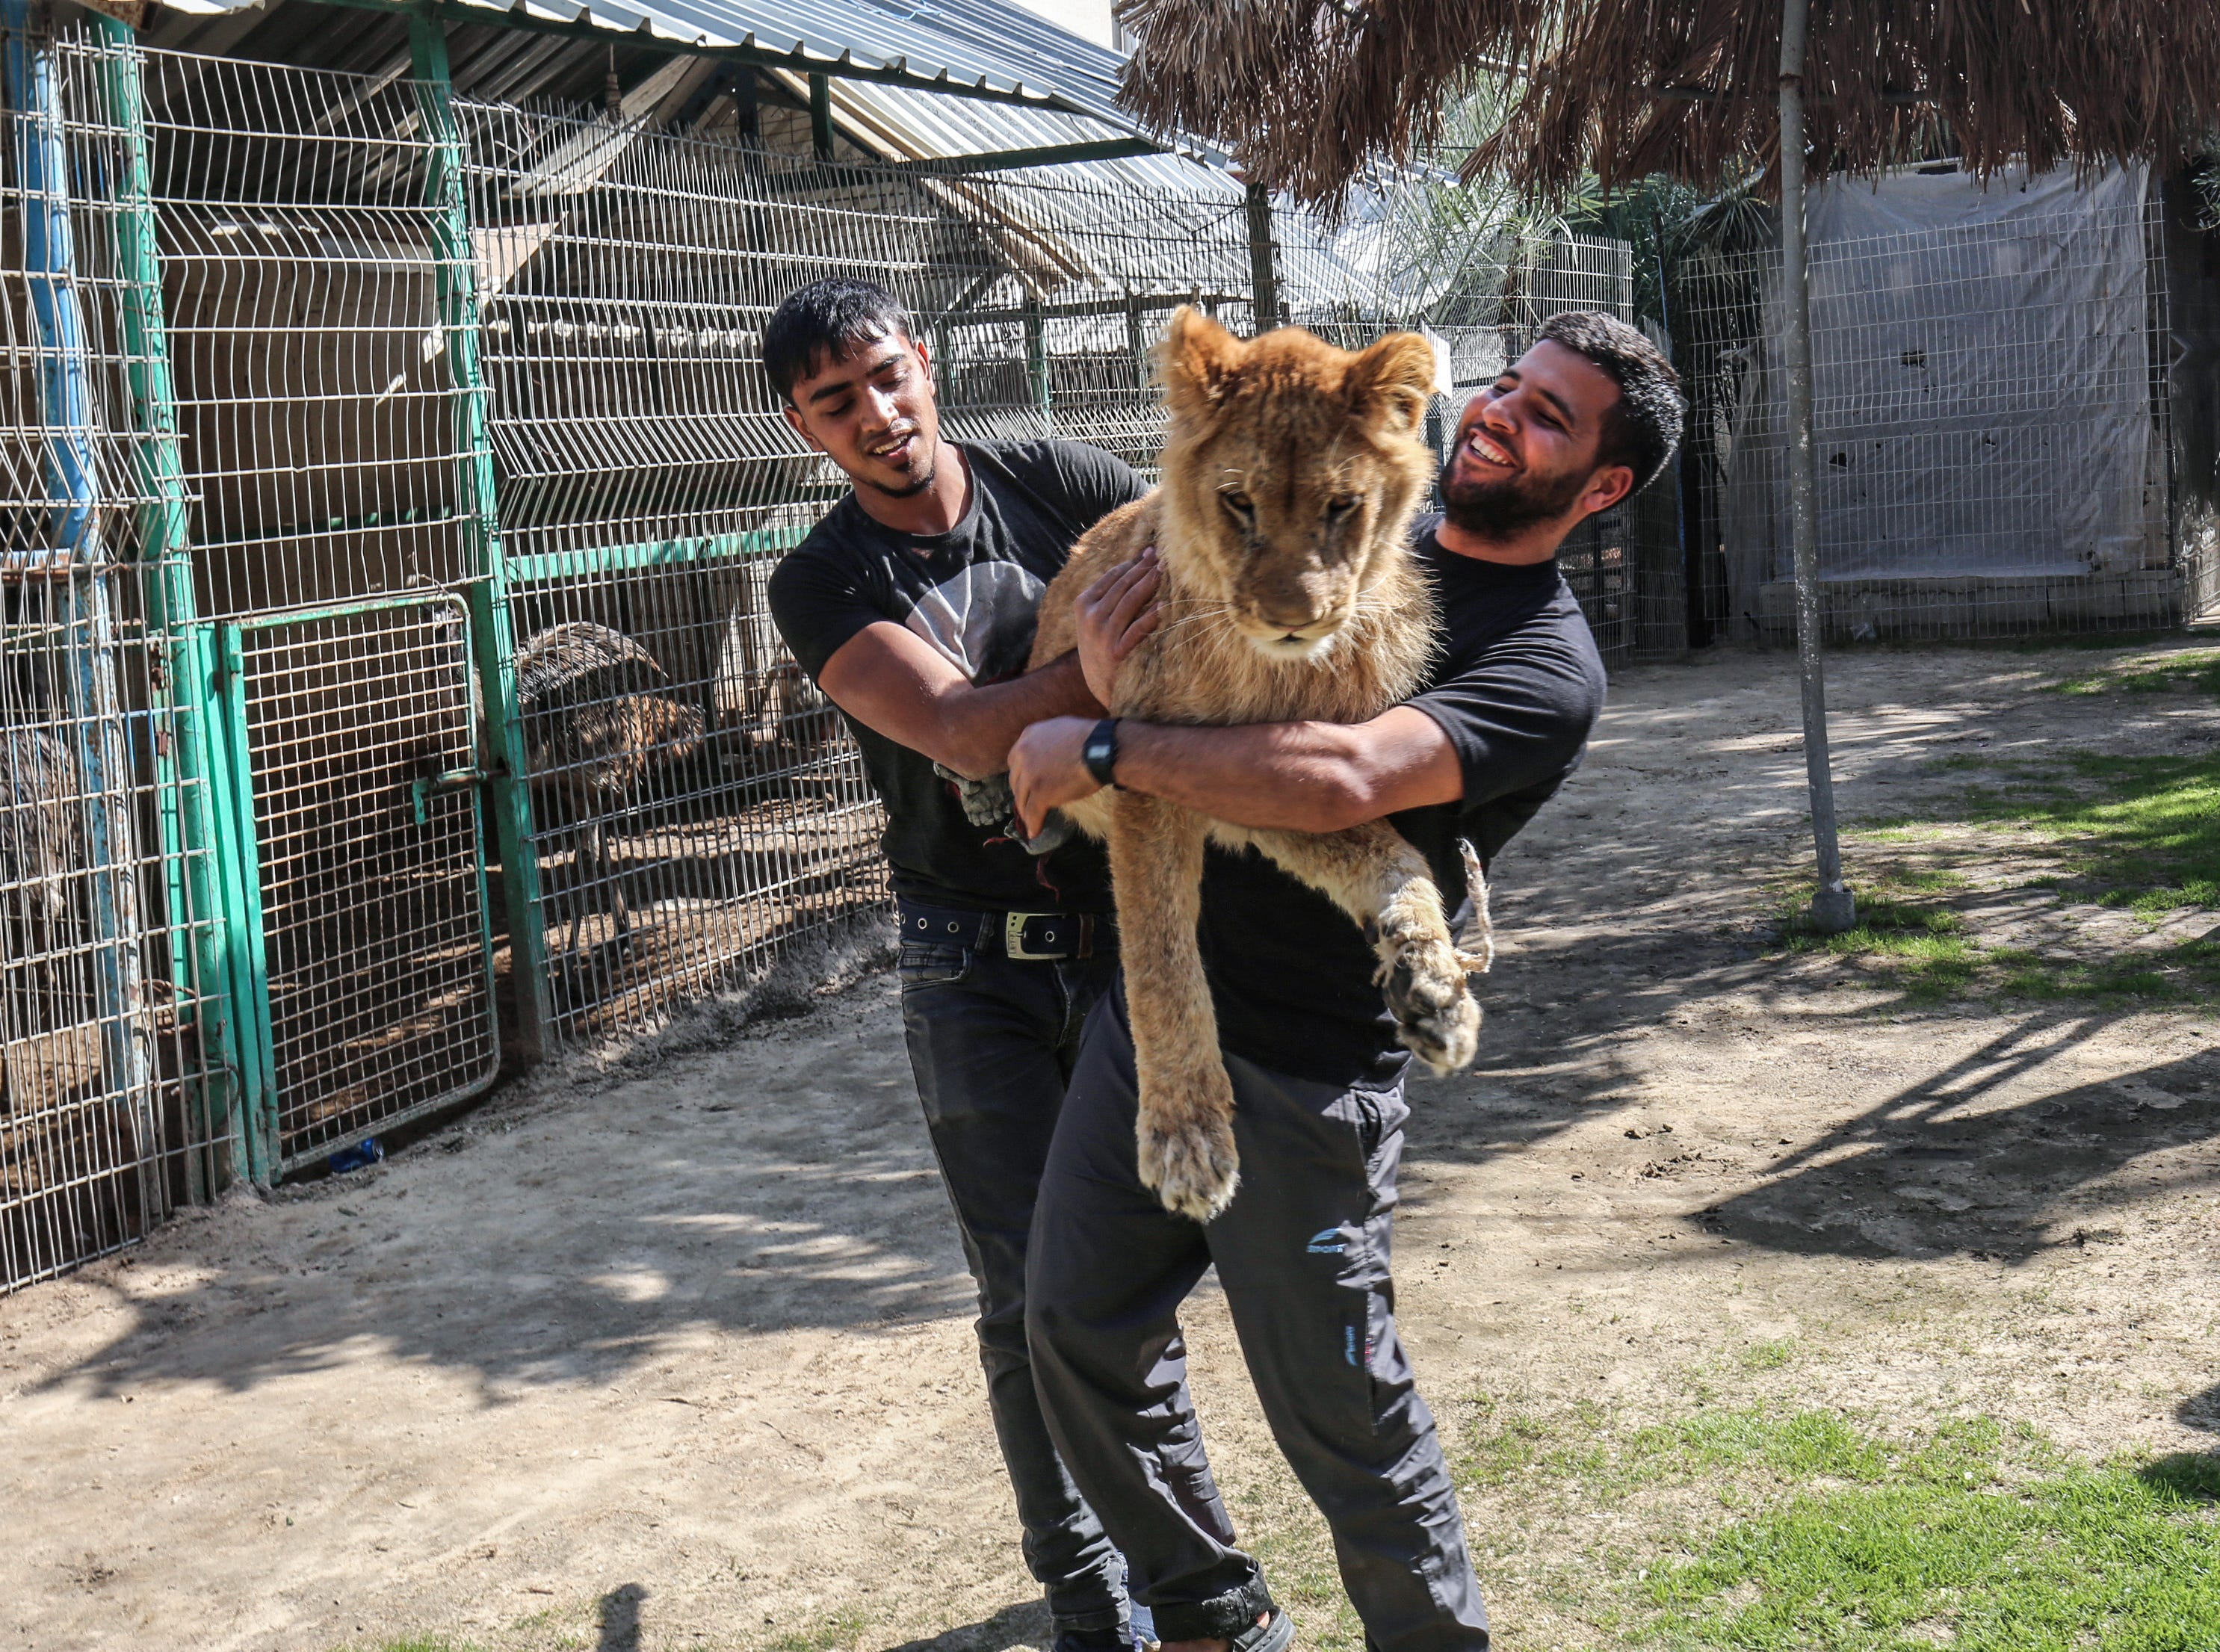 """Palestinian zoo workers hold up the lioness """"Falestine"""" at the Rafah Zoo in the southern Gaza Strip on February 12, 2019. - The zoo in the war-battered Palestinian enclave is promoting itself as offering the chance to play with the 14-month-old declawed lioness, which is supposed to be placid enough to meet visitors. It is the latest unconventional animal care practice in Gaza where there is no specialised animal hospital with a few dilapidated zoos competing for business."""